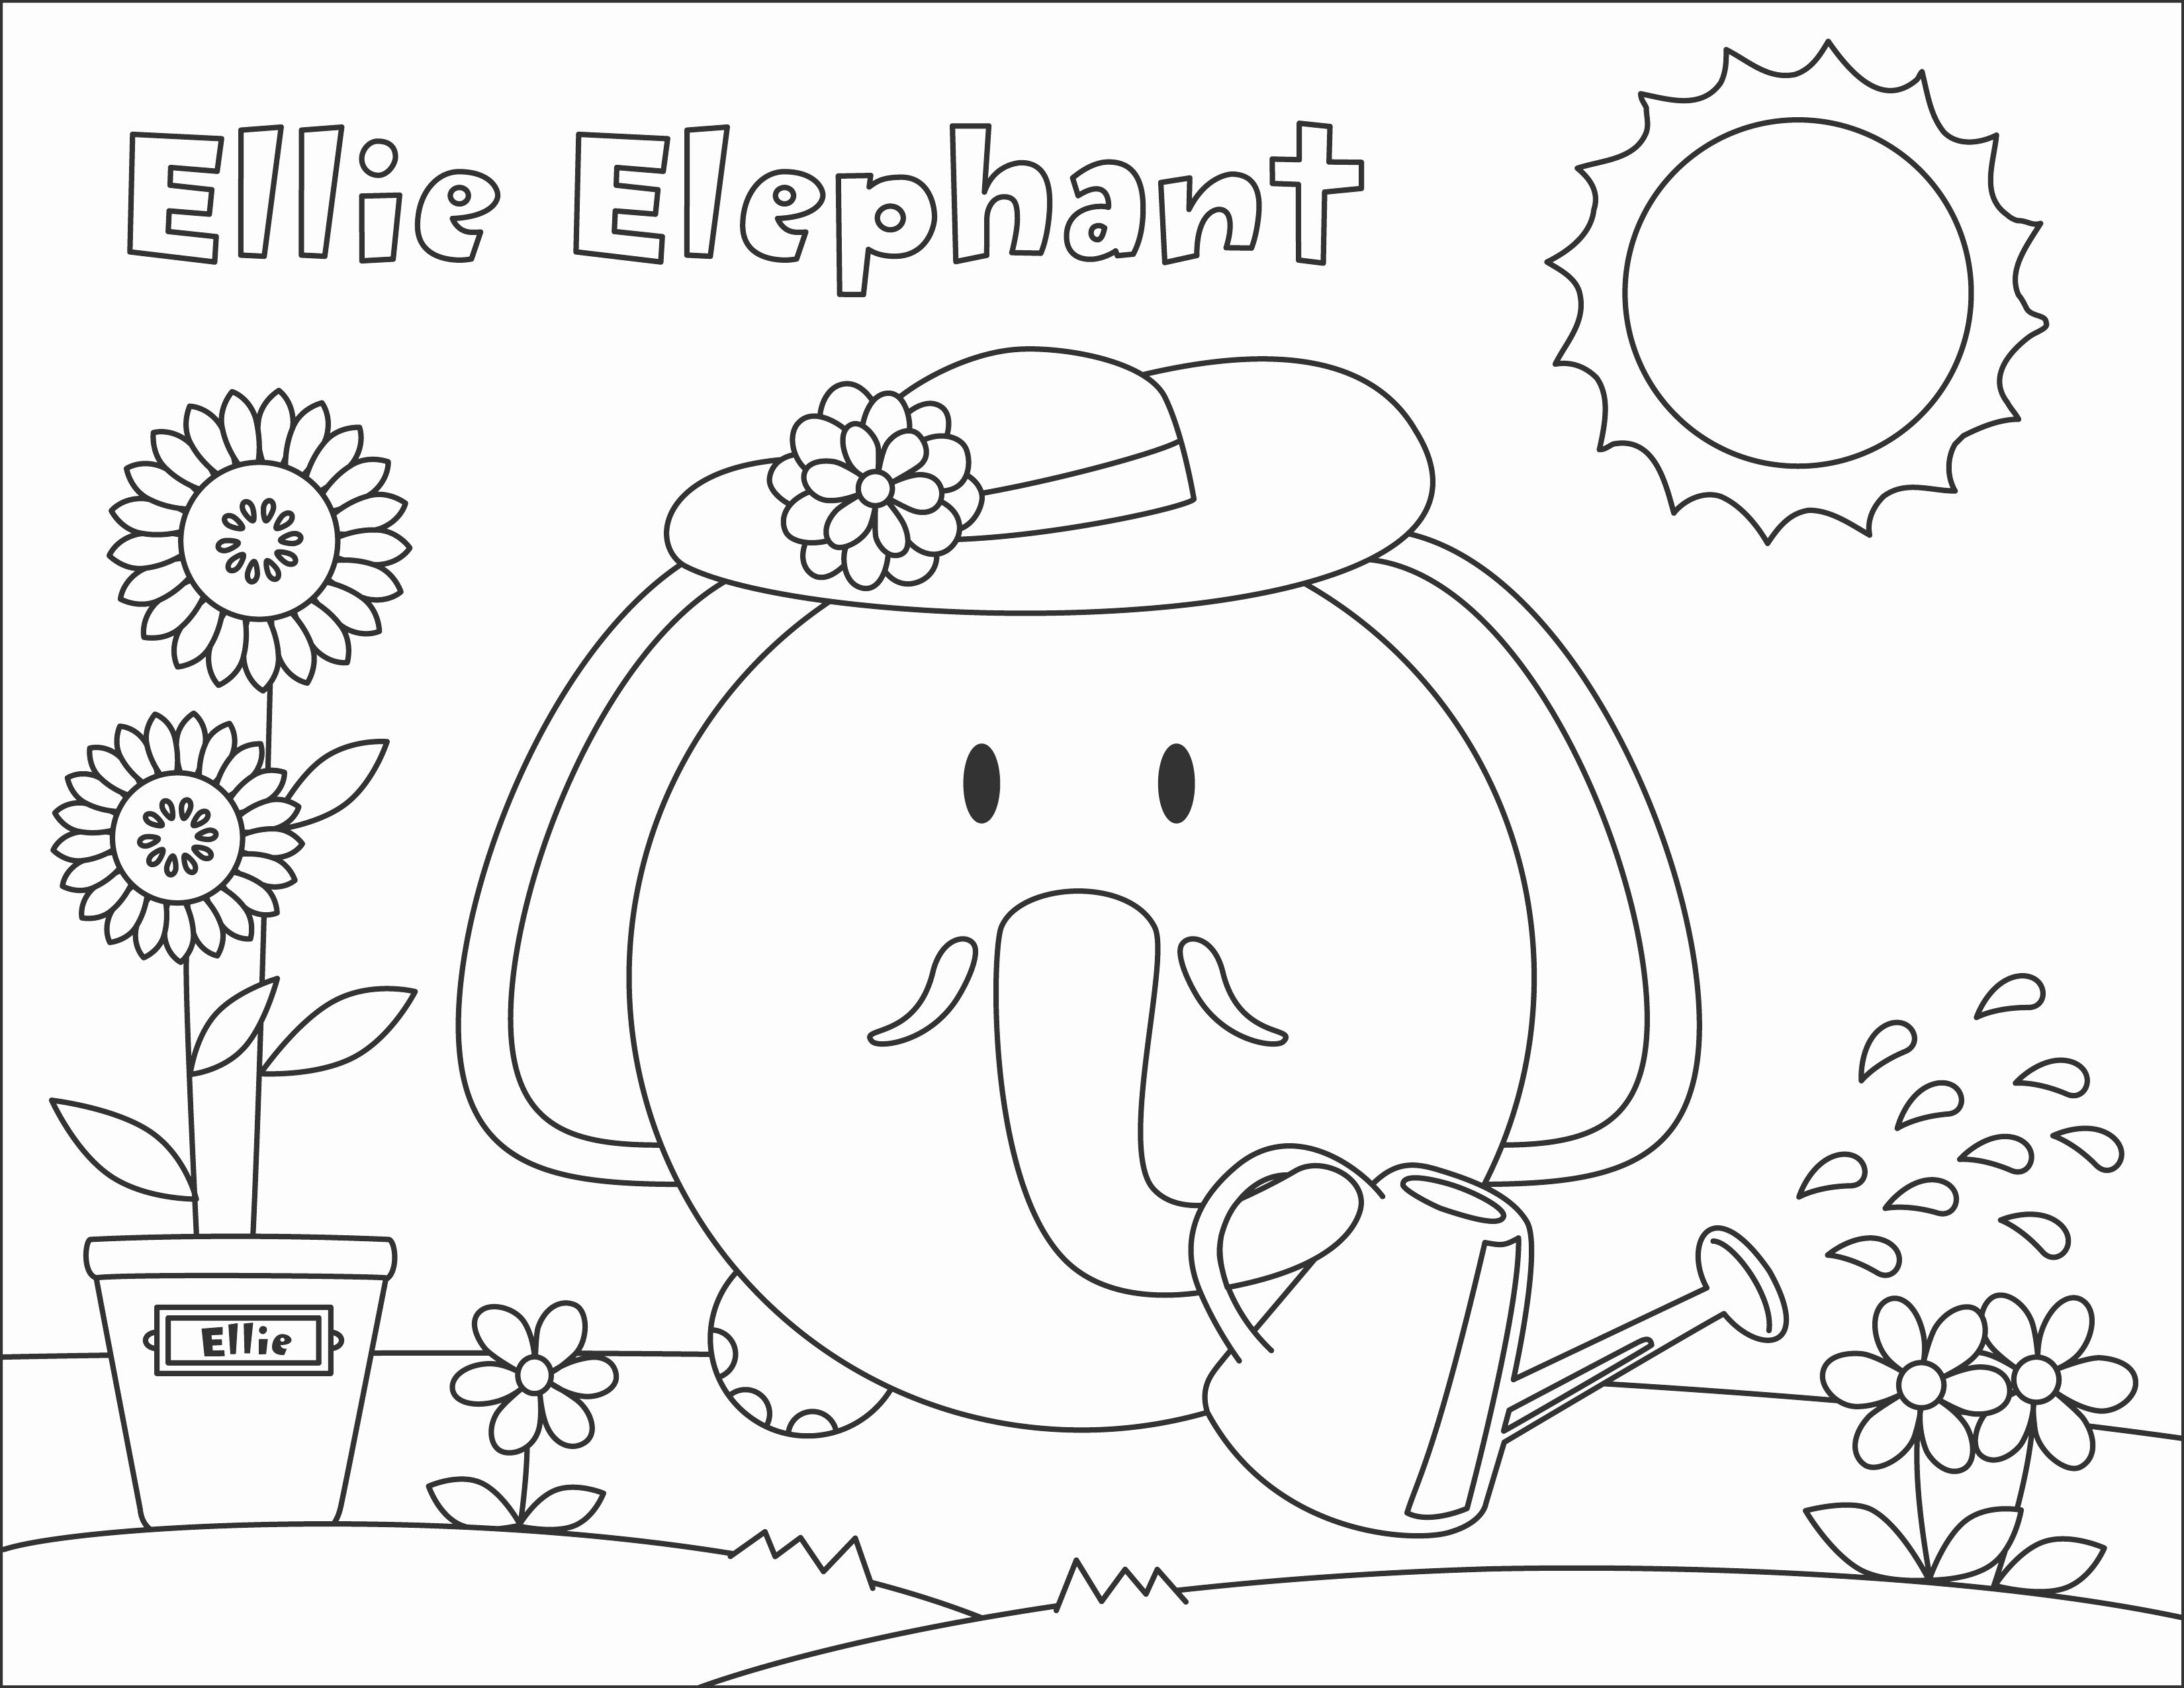 Free Halloween Coloring Page Printables | Free halloween coloring ... | 2550x3300